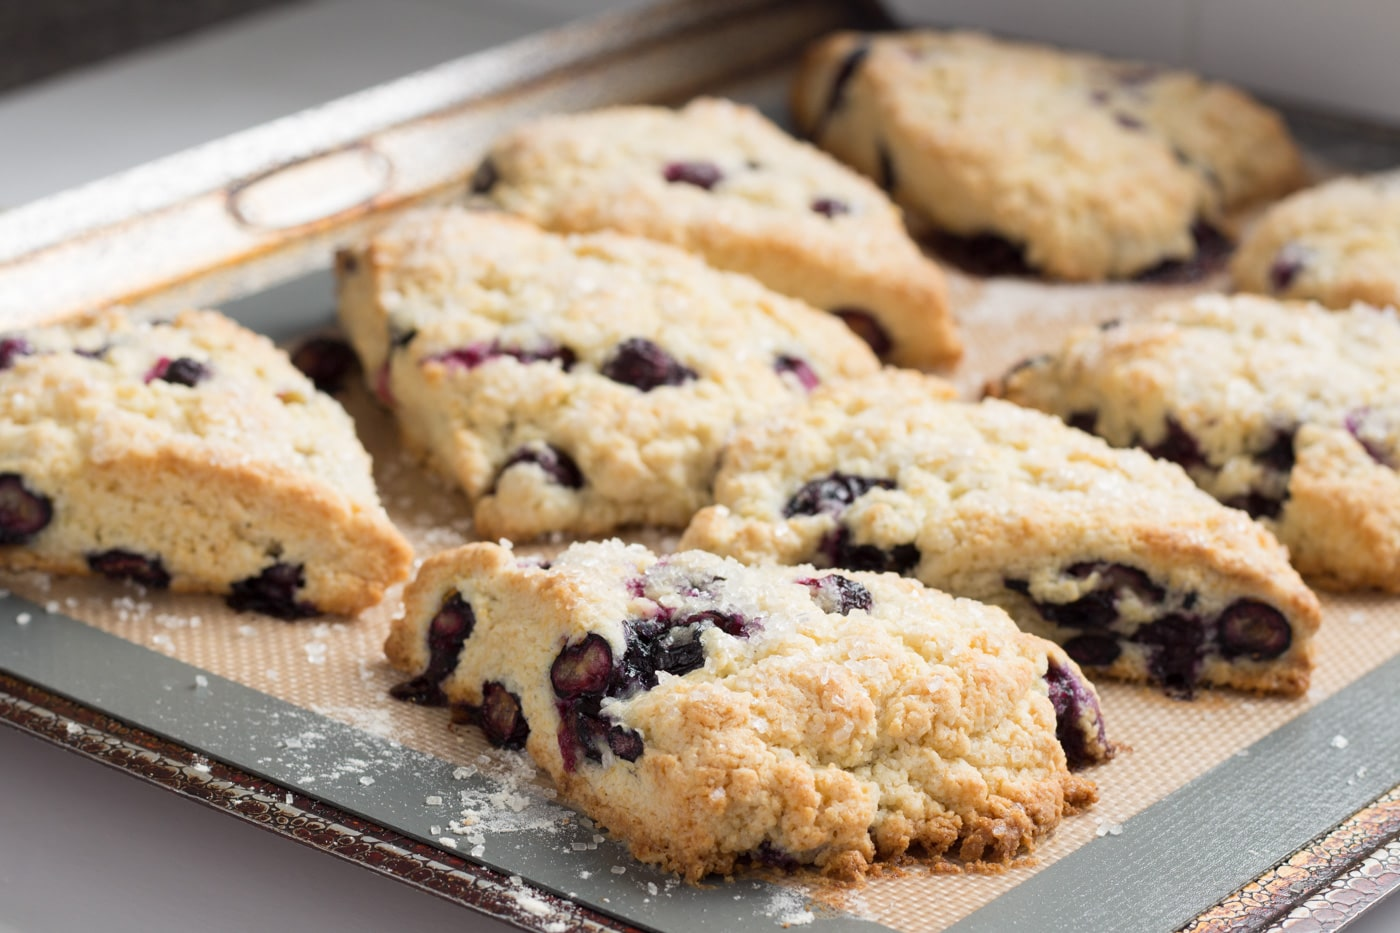 Side view of baked blueberry scones on a baking sheet